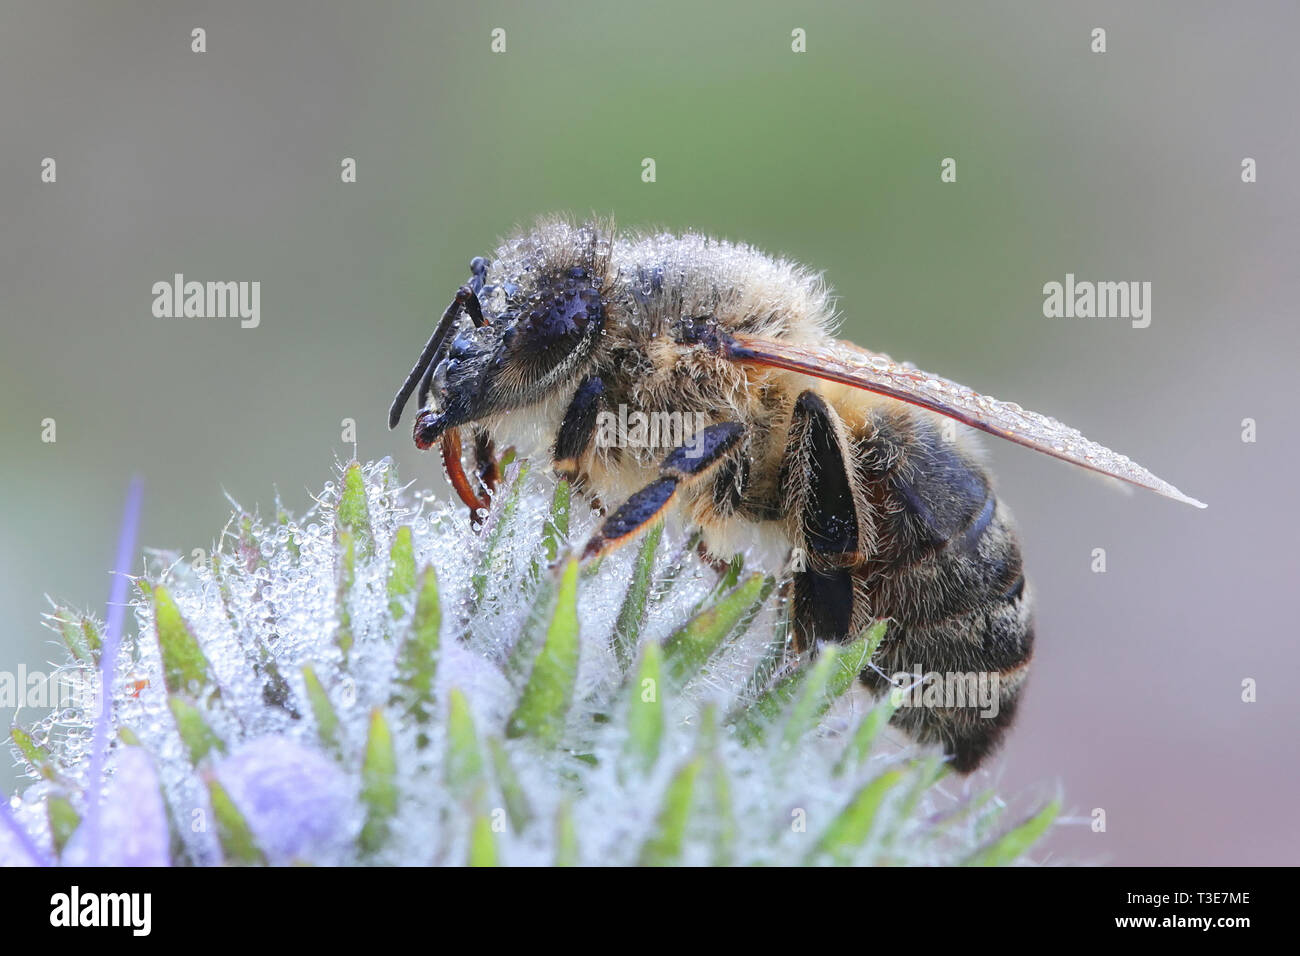 Western honey bee or European honey bee, Apis mellifera - Stock Image